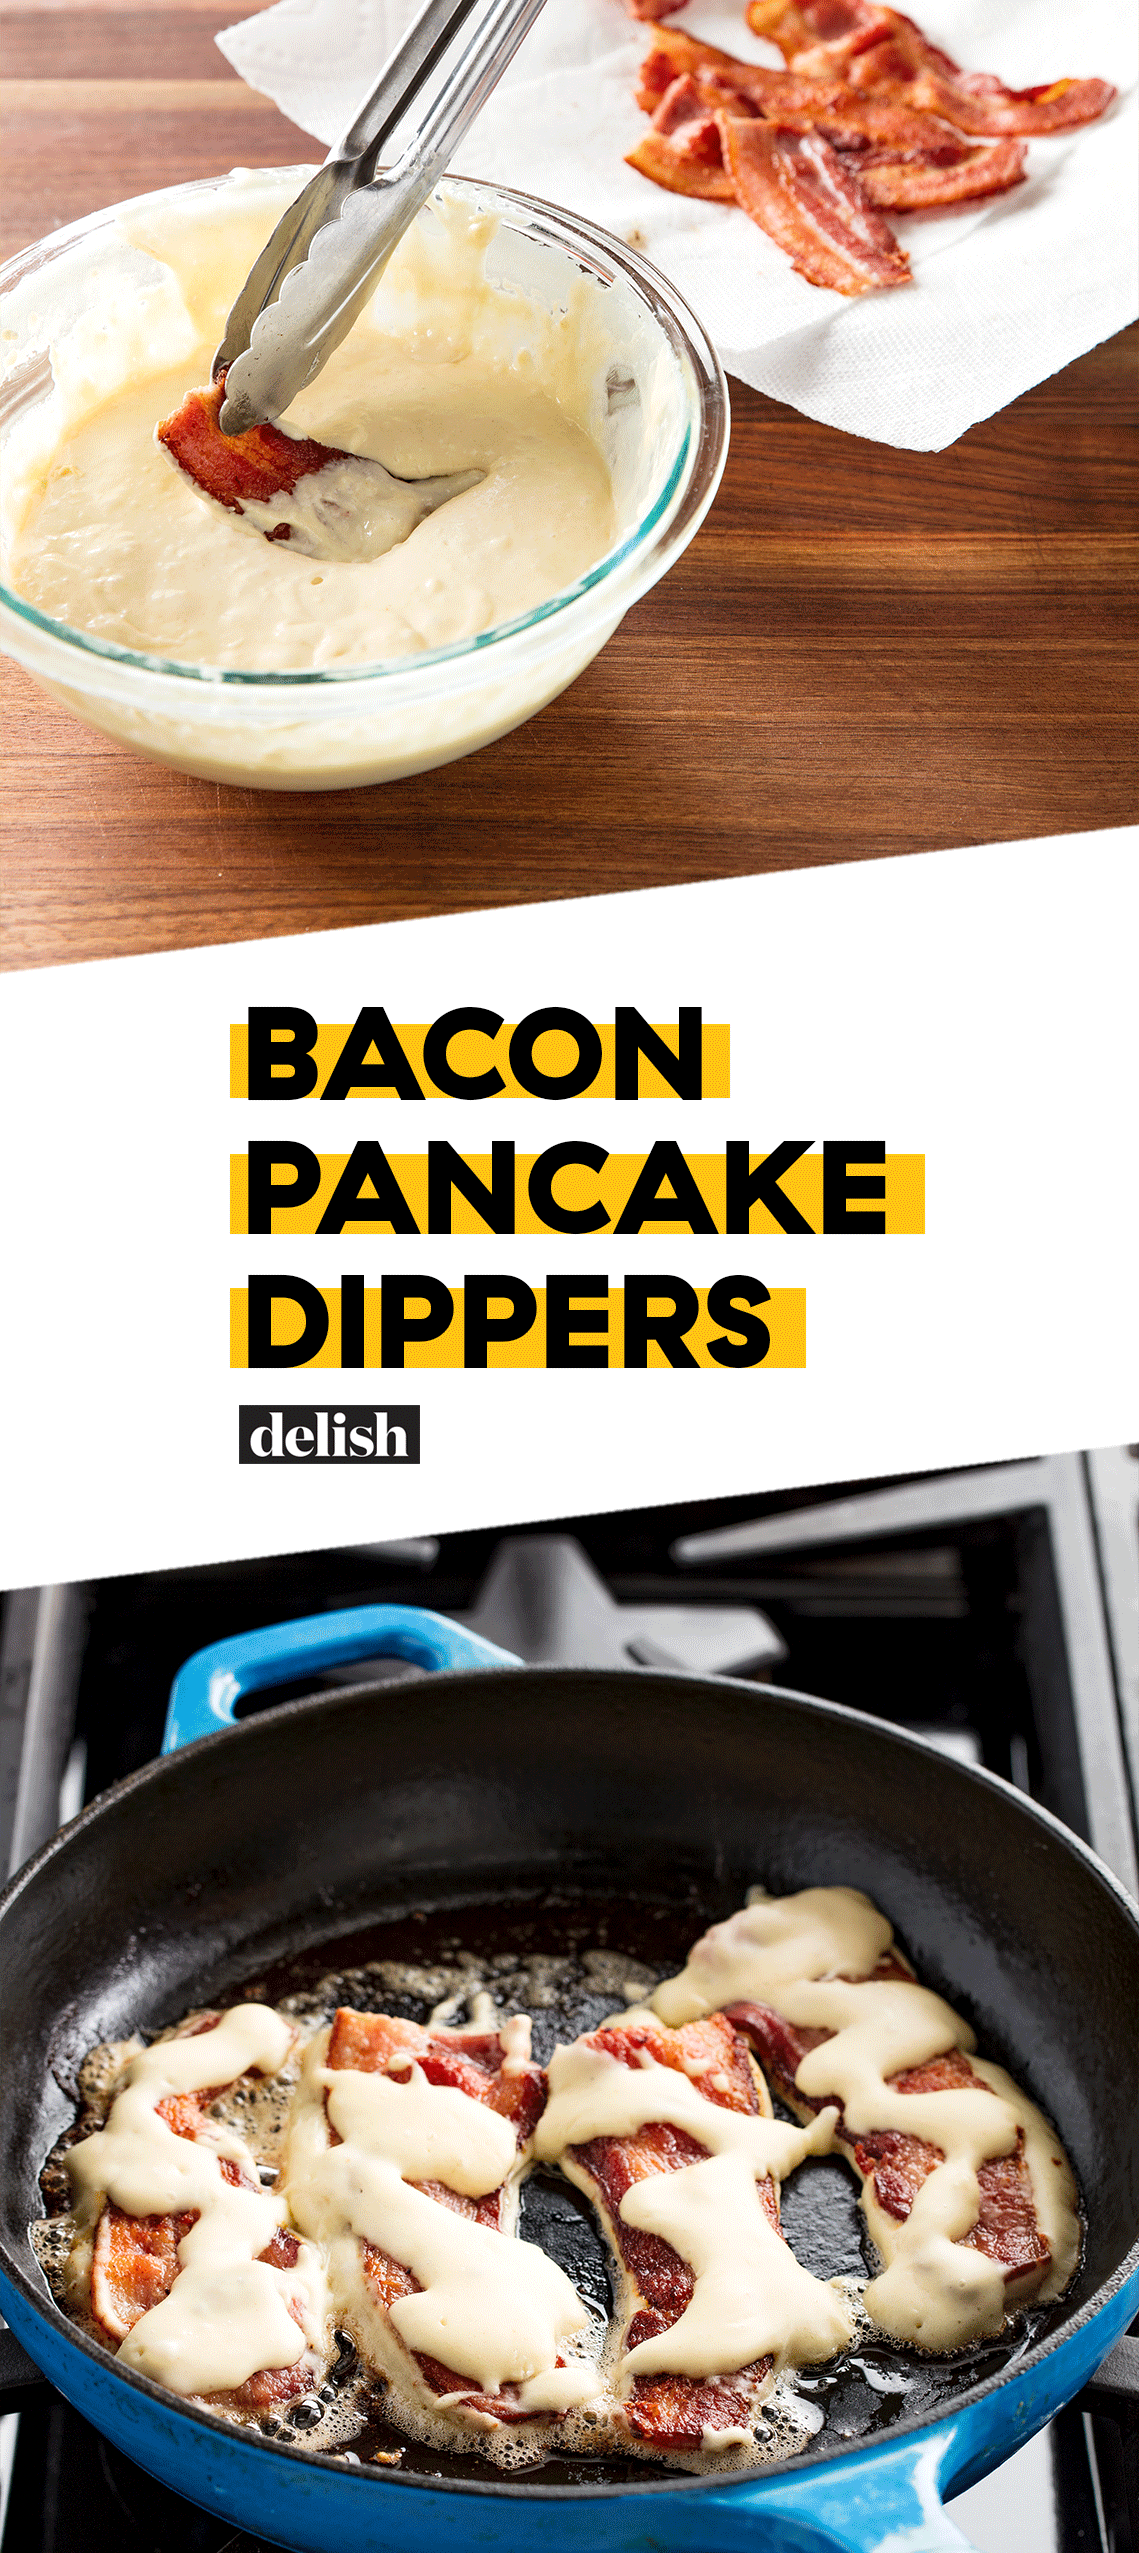 Bacon Pancake Dippers are the perfect combo of sweet and salty.